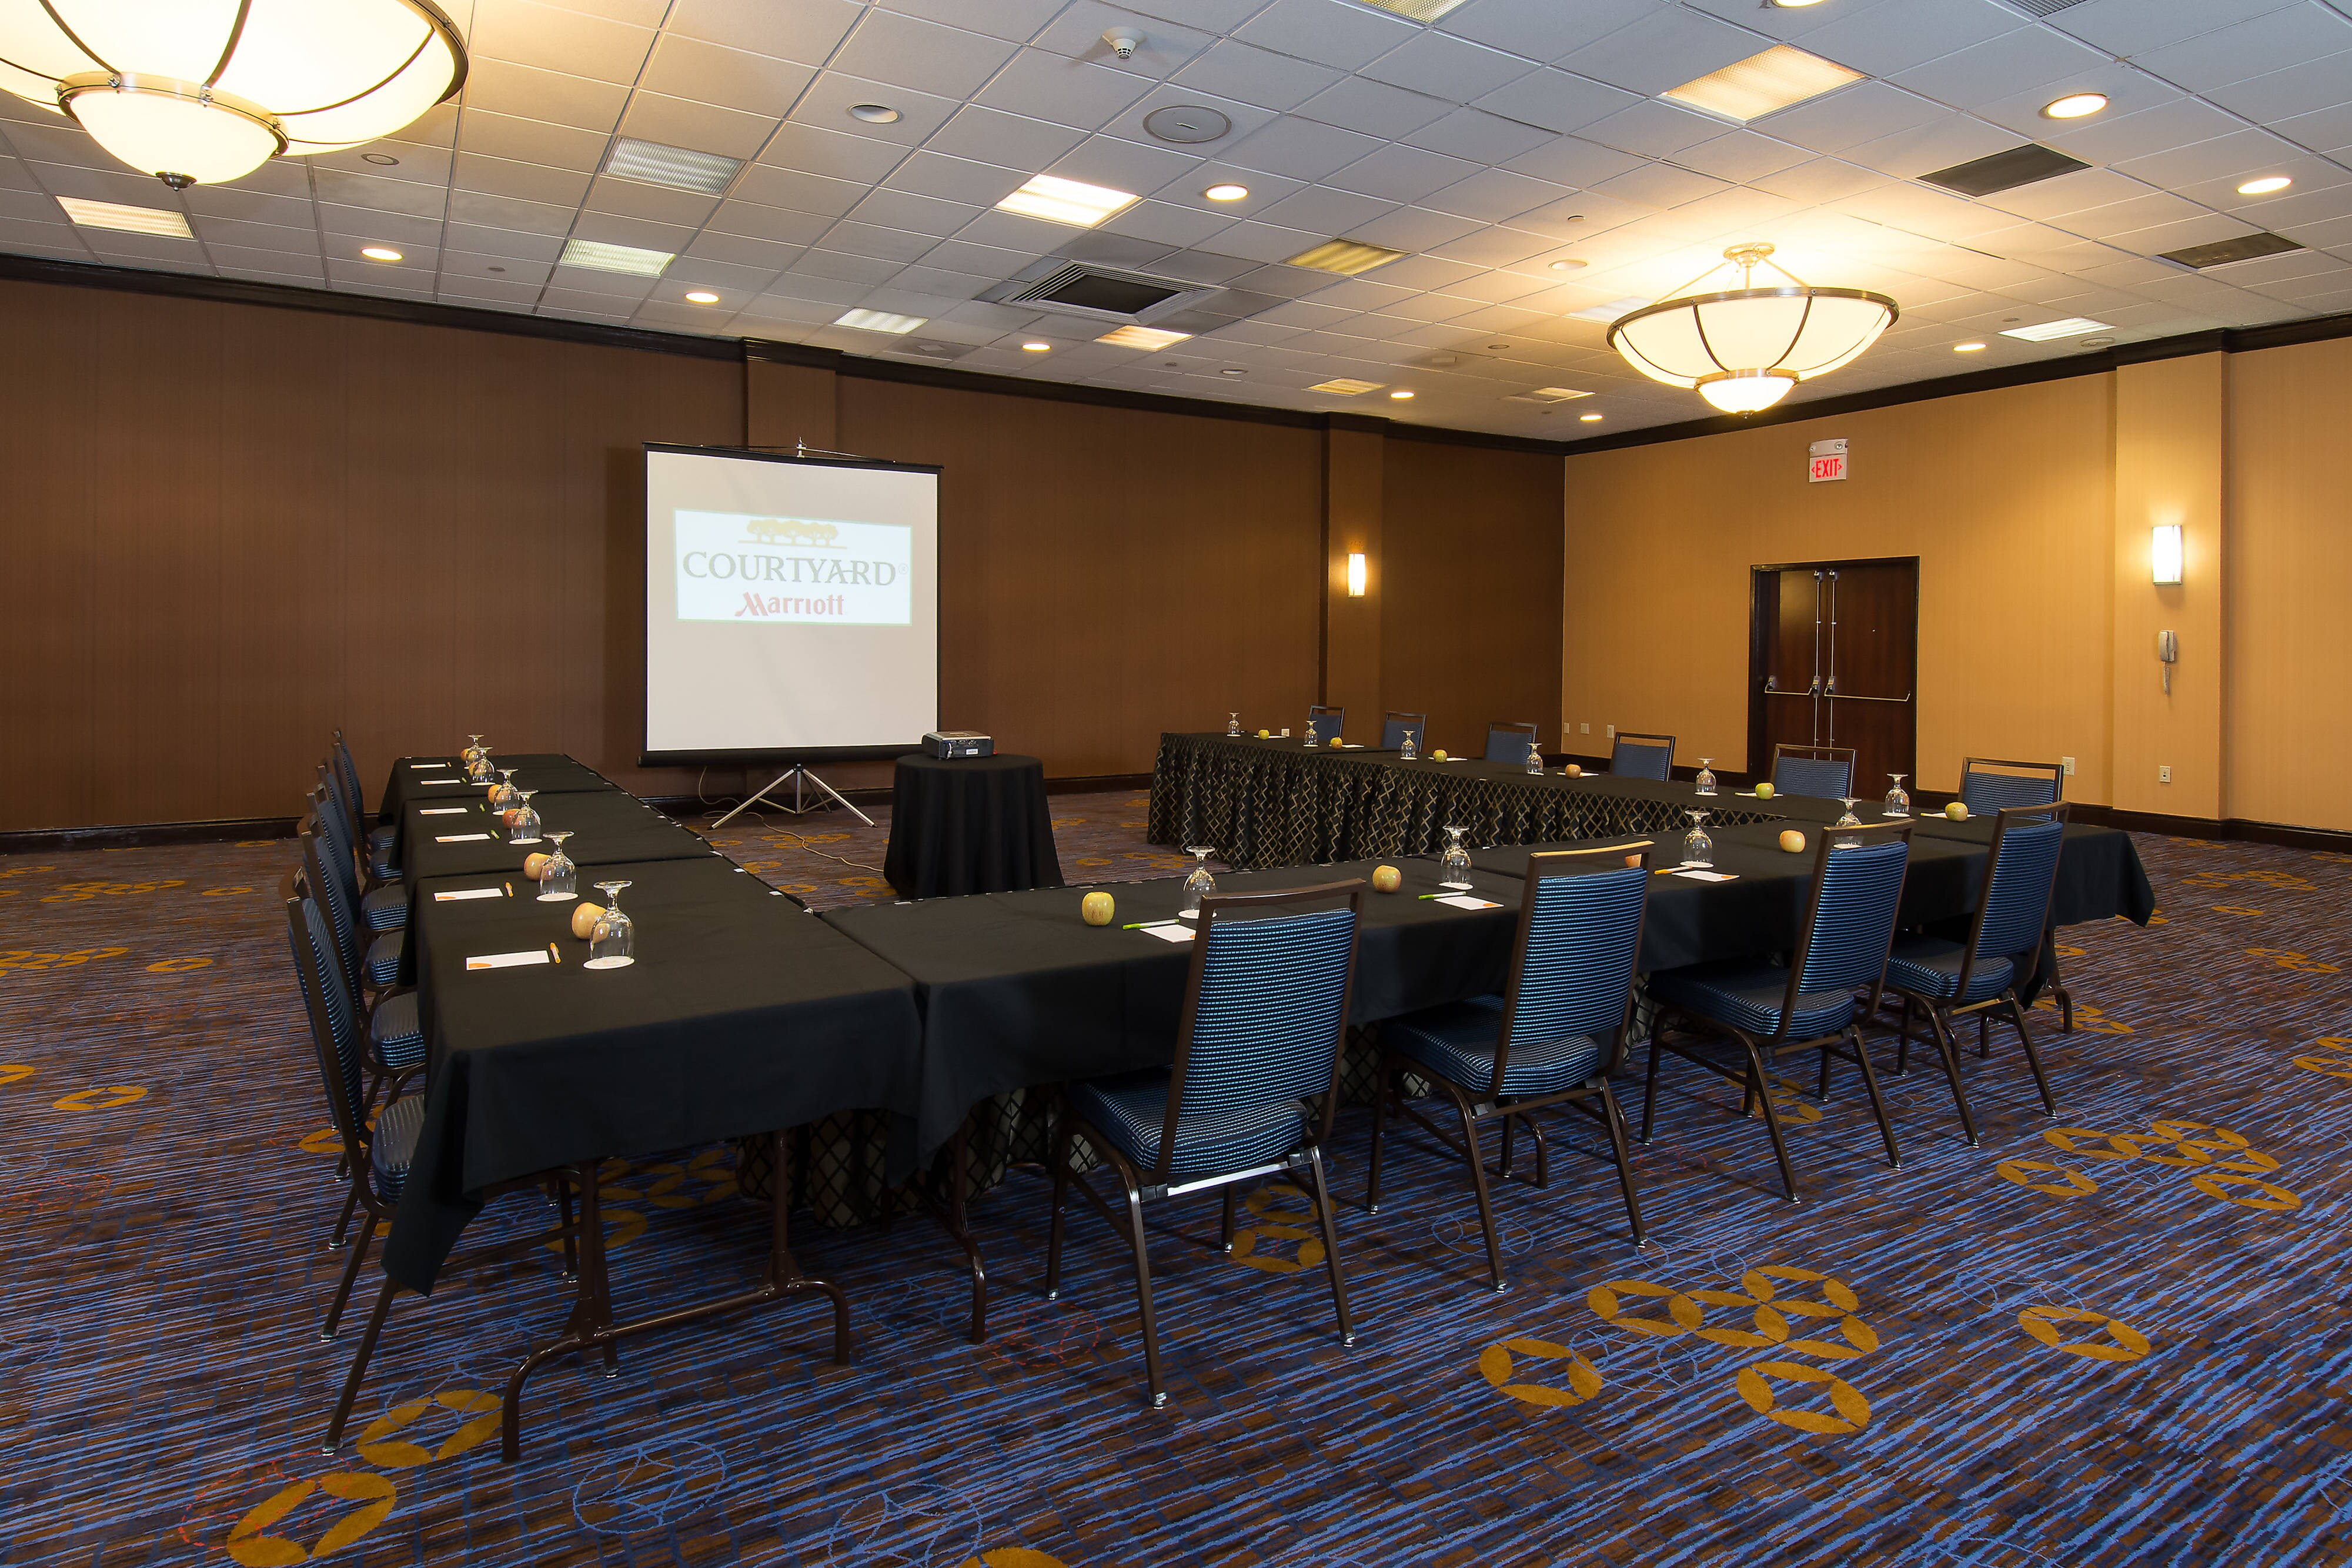 Richland Meeting Room – U-Shape Setup